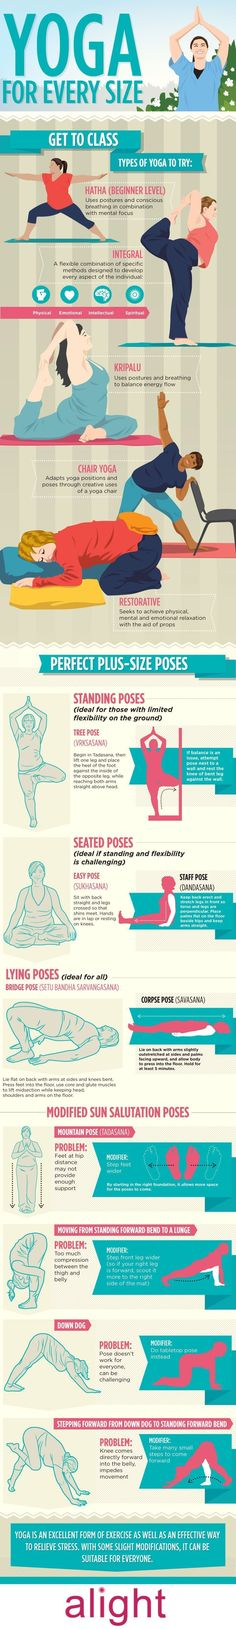 Infographic visualized by http://www.tipsographic.com/ Yoga for health, yoga for beginners, yoga poses, yoga quotes, yoga inspiration